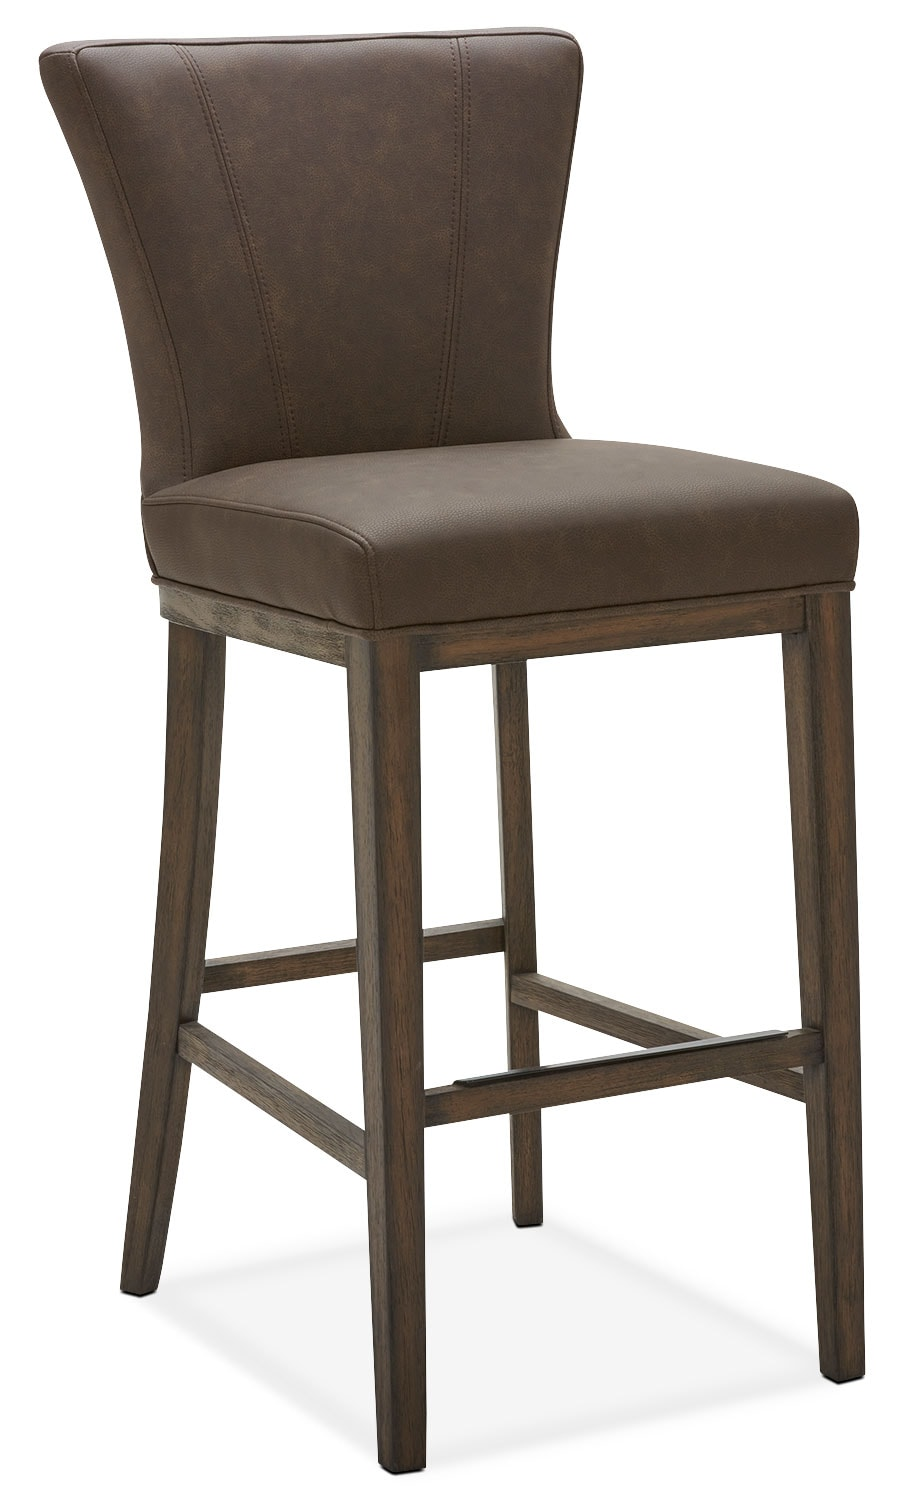 Bar Stools The Brick